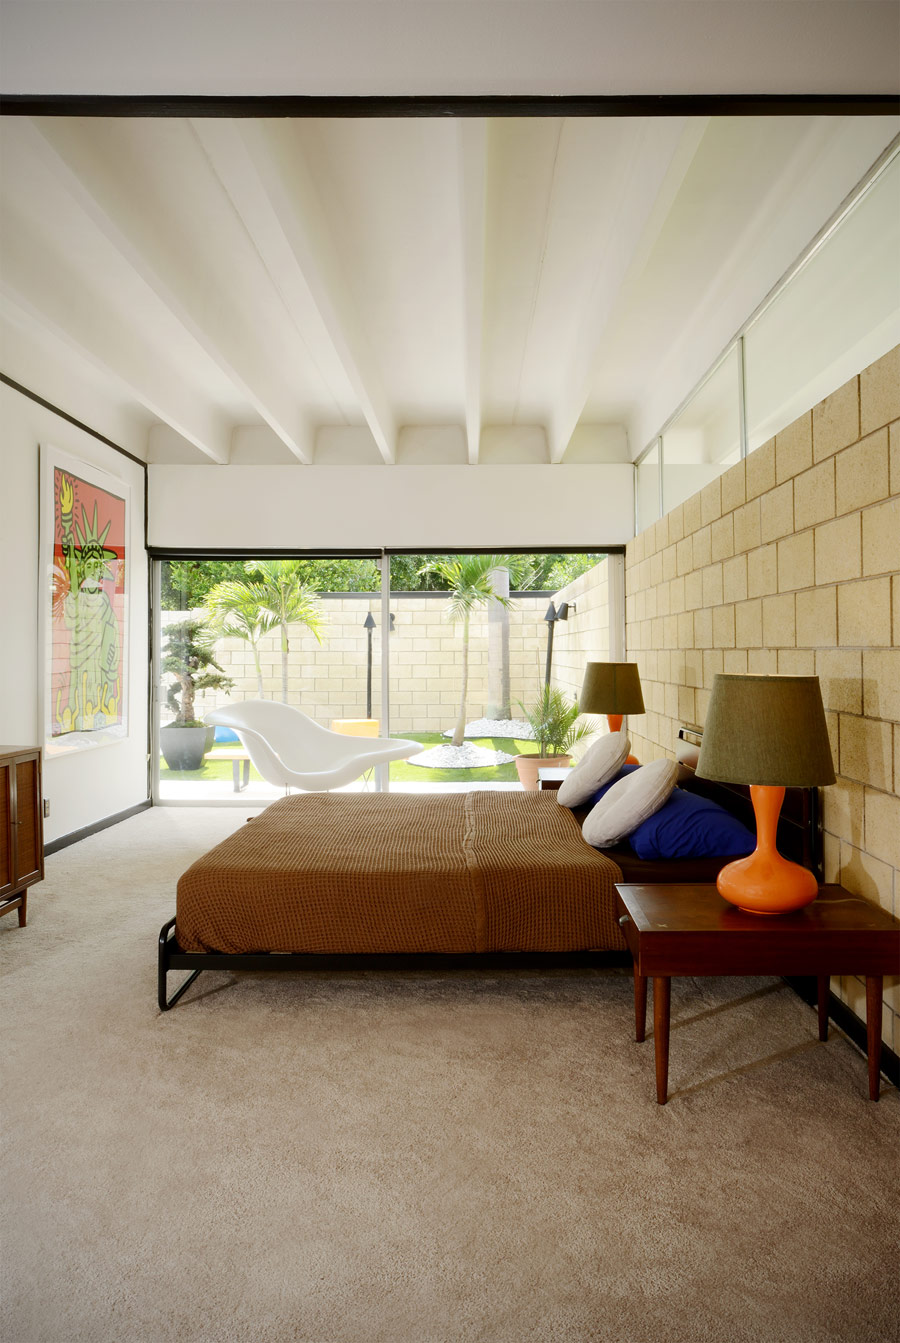 The master bedroom is opened up to outdoors with glass doors, there's colorful furniture and an artwork